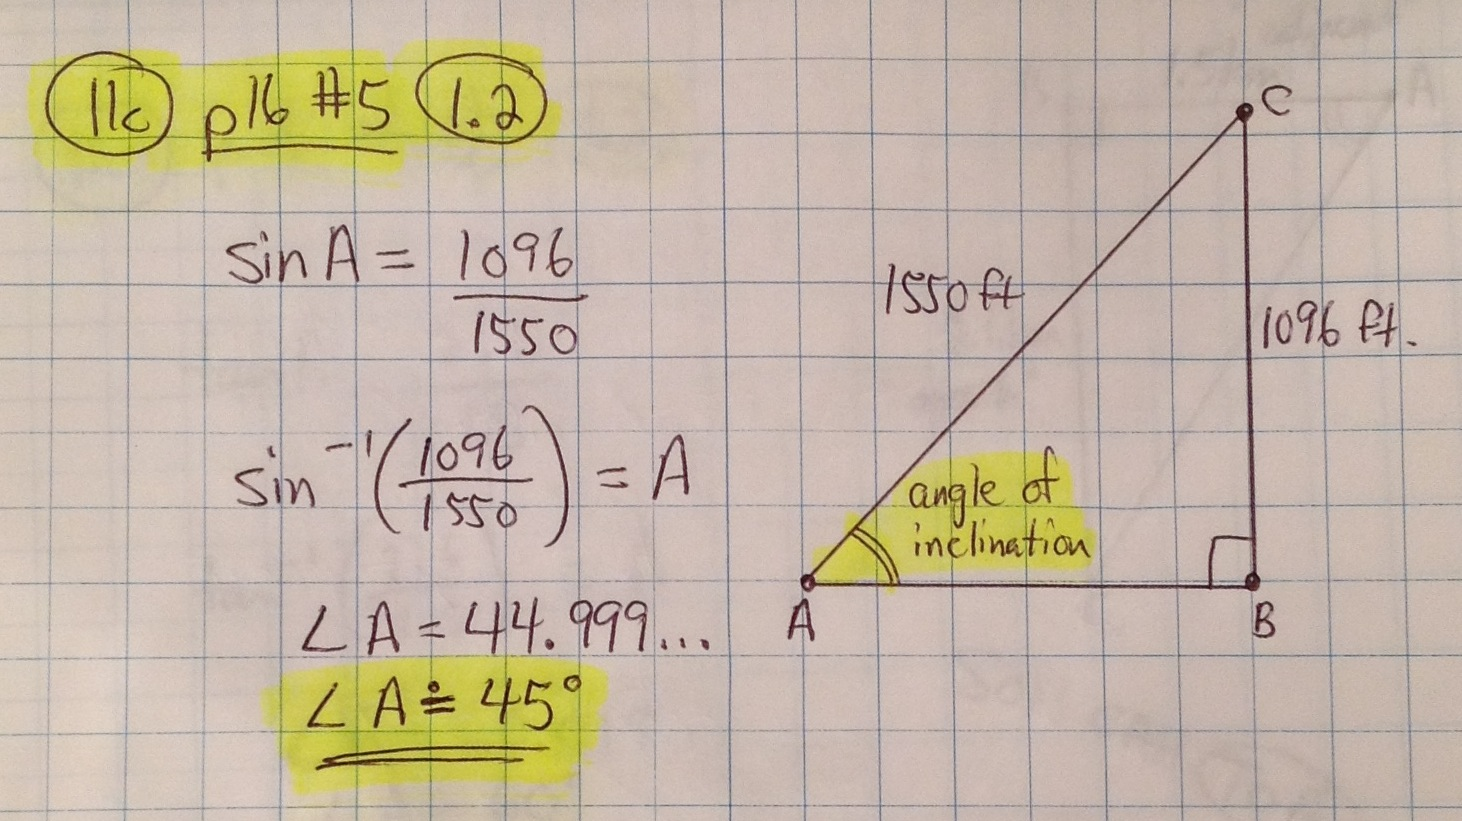 Worksheet Three Digit Word Problems need math help grade 11 mathematics ontario canada 1 2 angles in right triangles pg13 page 15 question 1b solution notes download 16 5 download